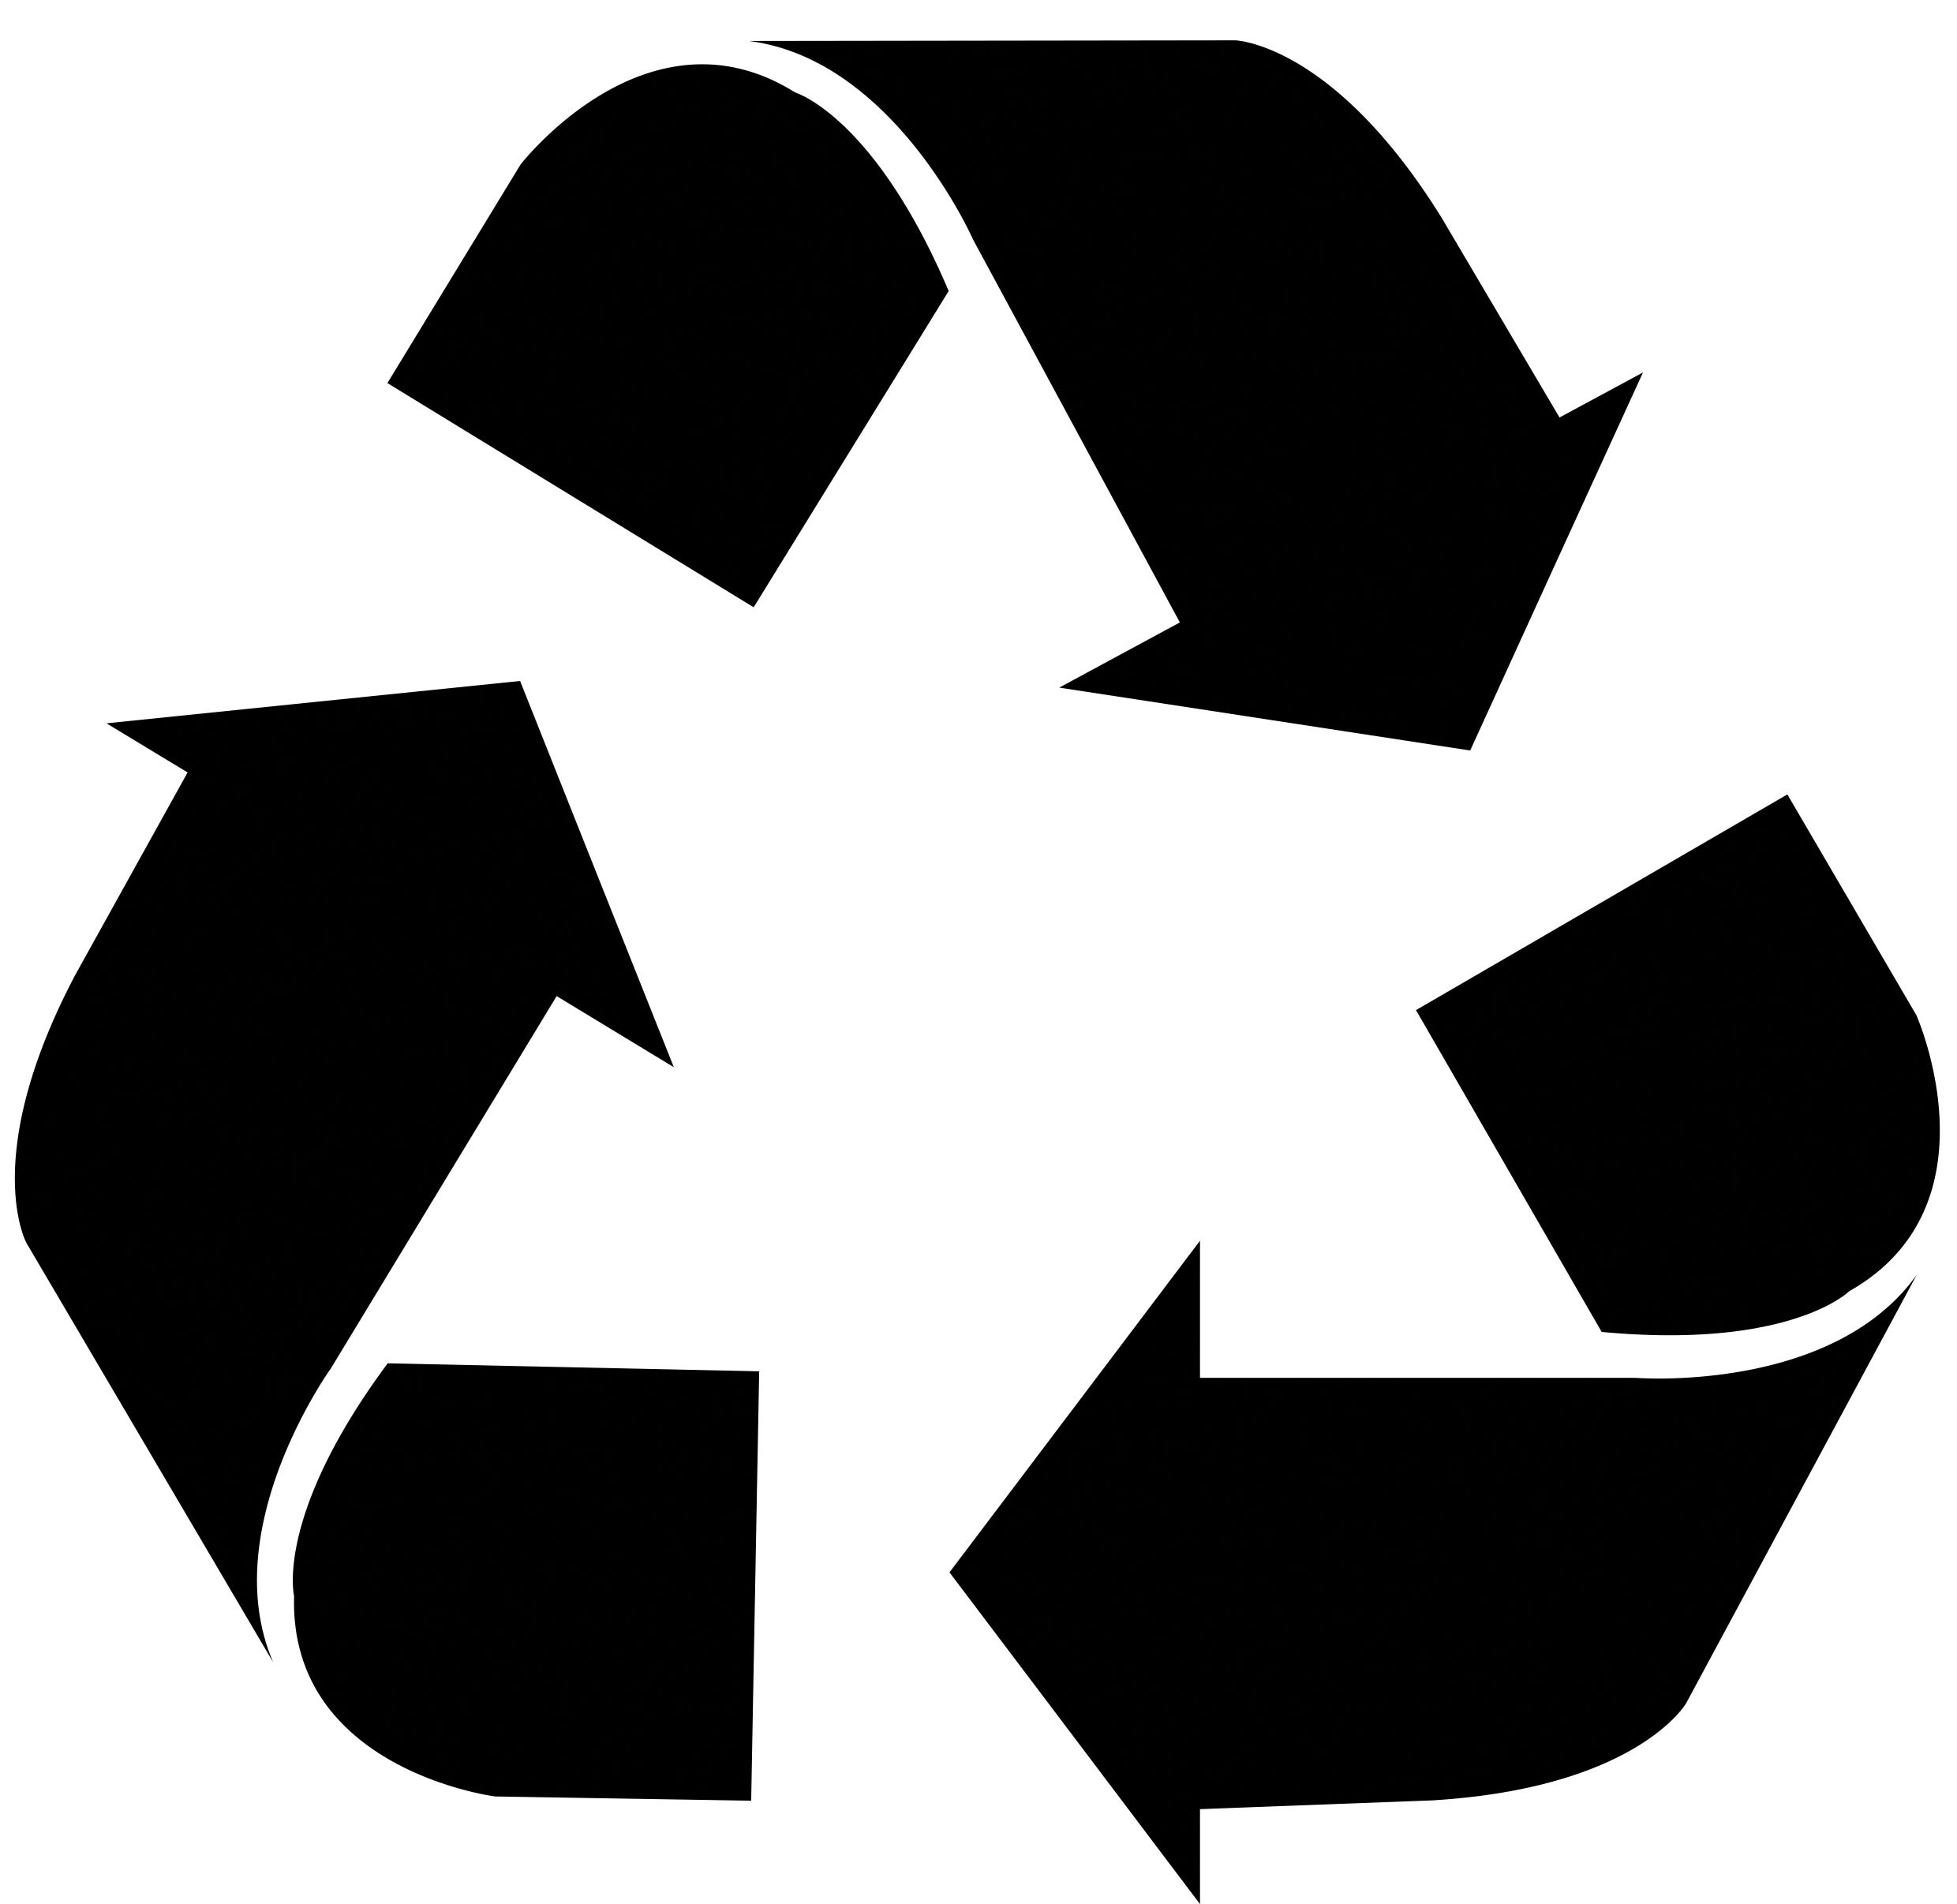 Recycling Symbols - ClipArt Best